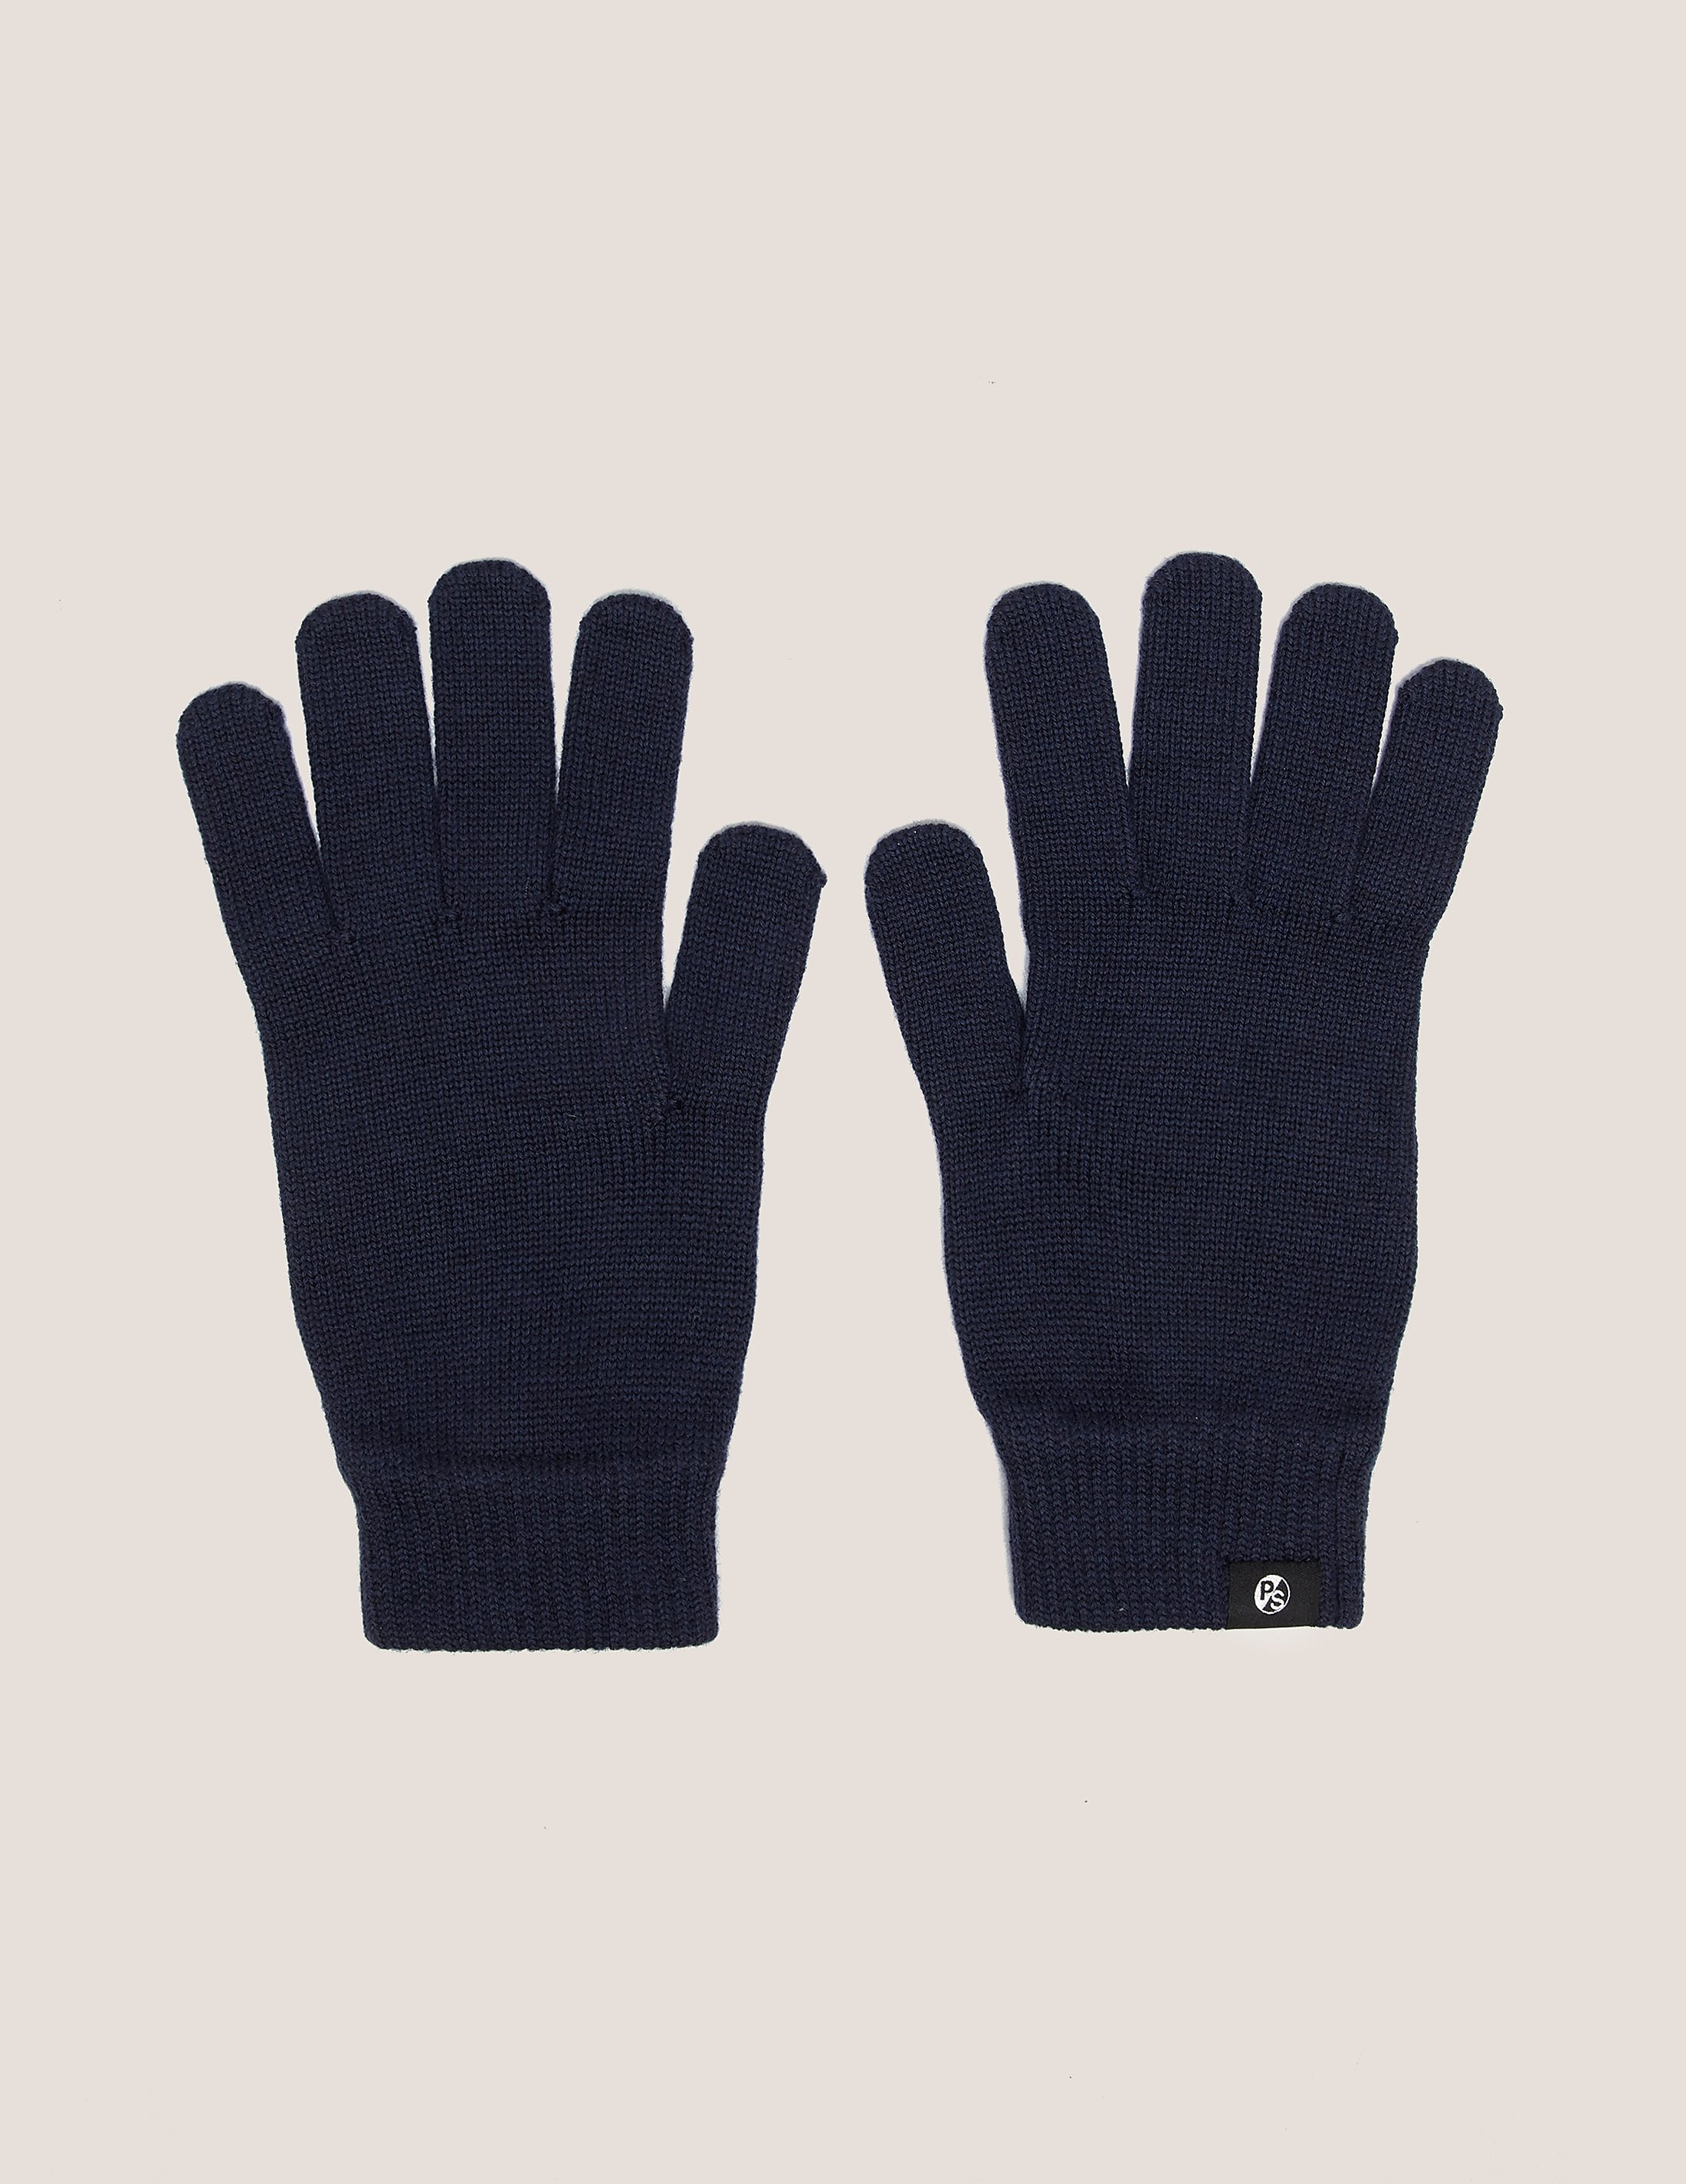 Paul Smith Merino Gloves